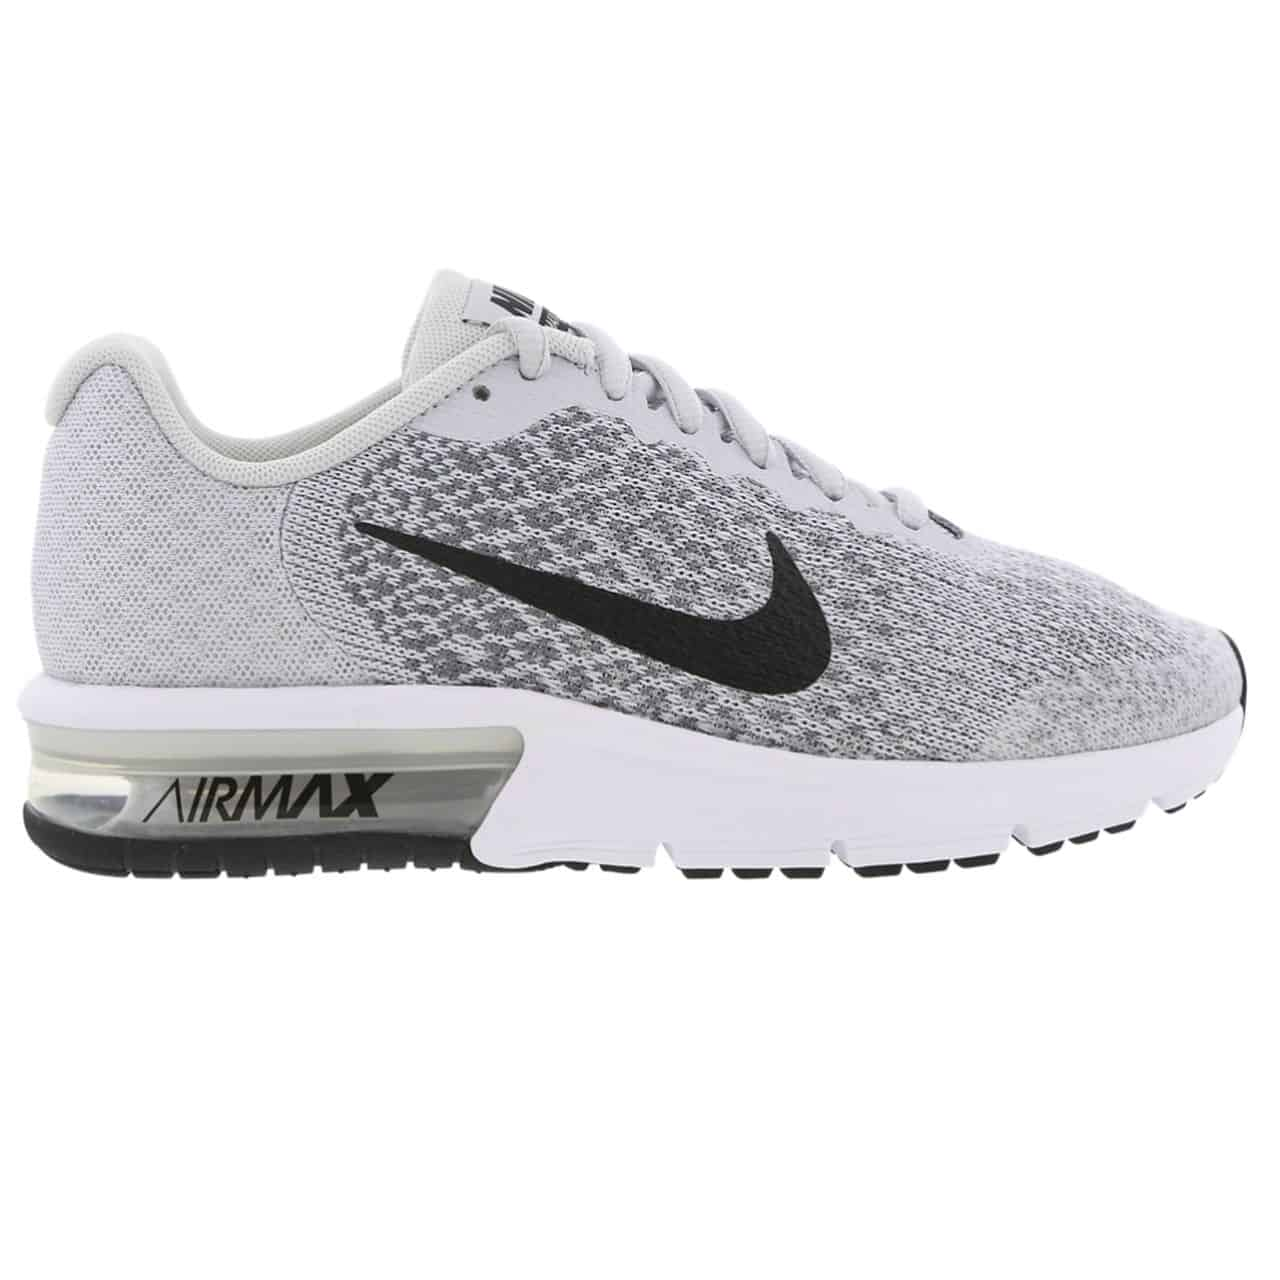 15d0affbdb56 ... discount code for adidasi originali nike air max sequent 2 gs 869993  006 e5a75 b258b